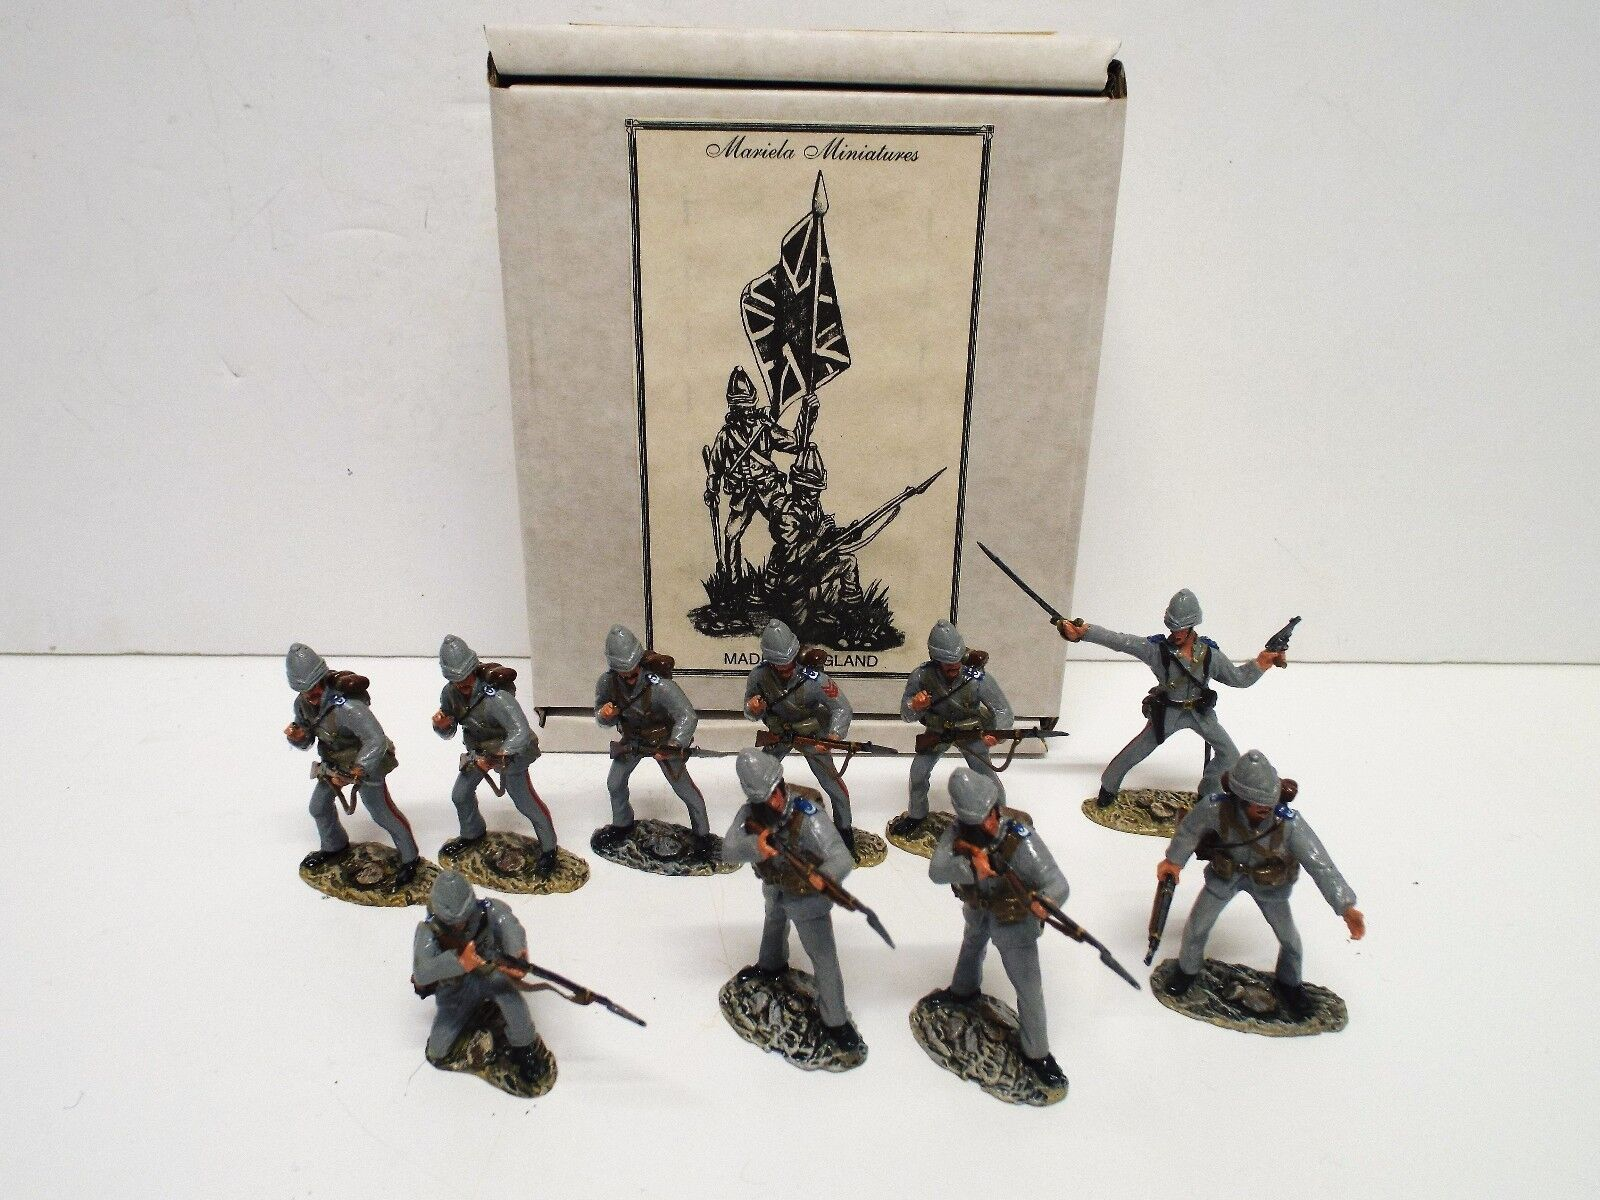 MARIELA MINIATURES 10 X 1884 ROYAL MARINES LIGHT INFANTRY SET BOXED. (BS2336)